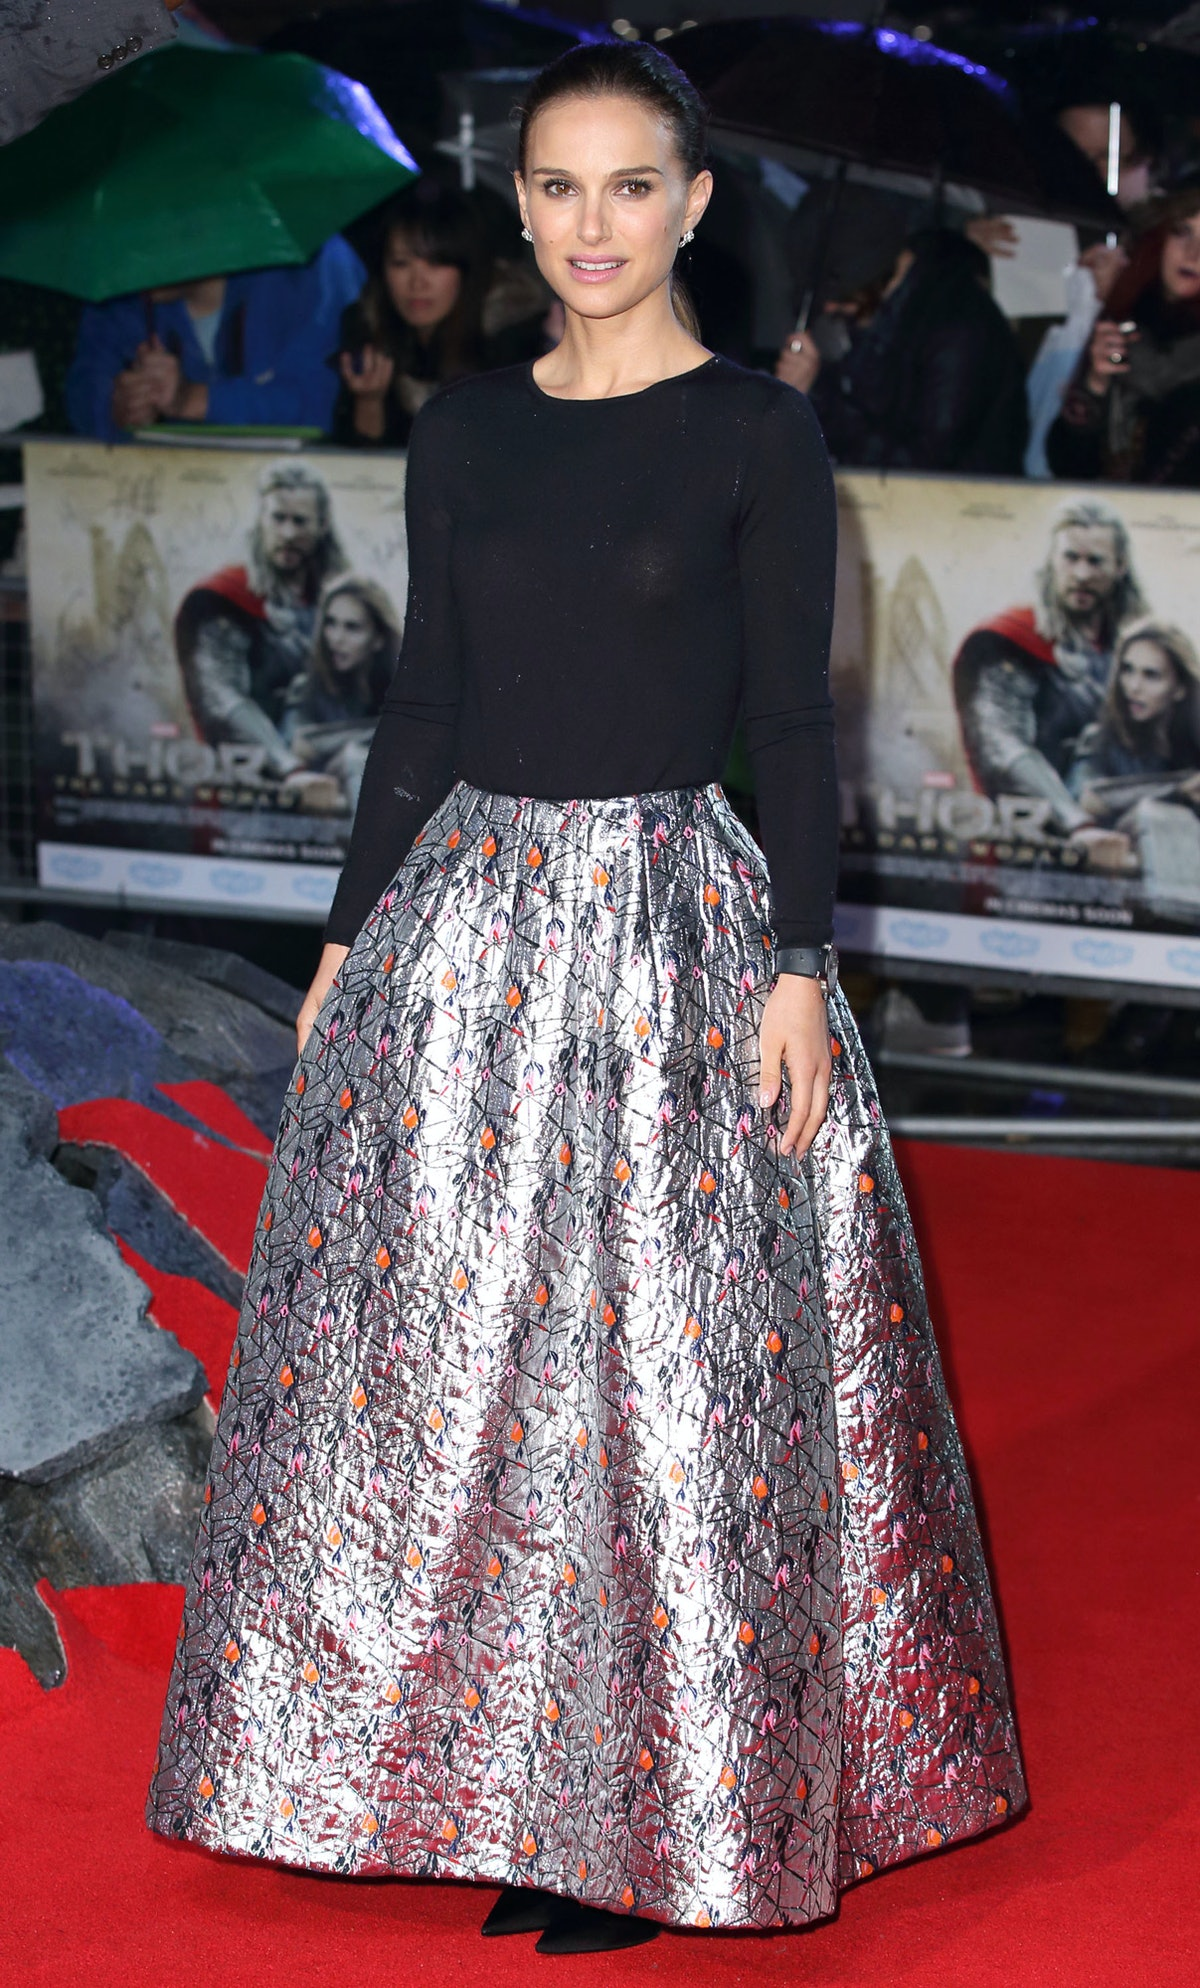 """Natalie Portman attends the """"Thor"""" premiere in Dior. Photo by Getty Images."""